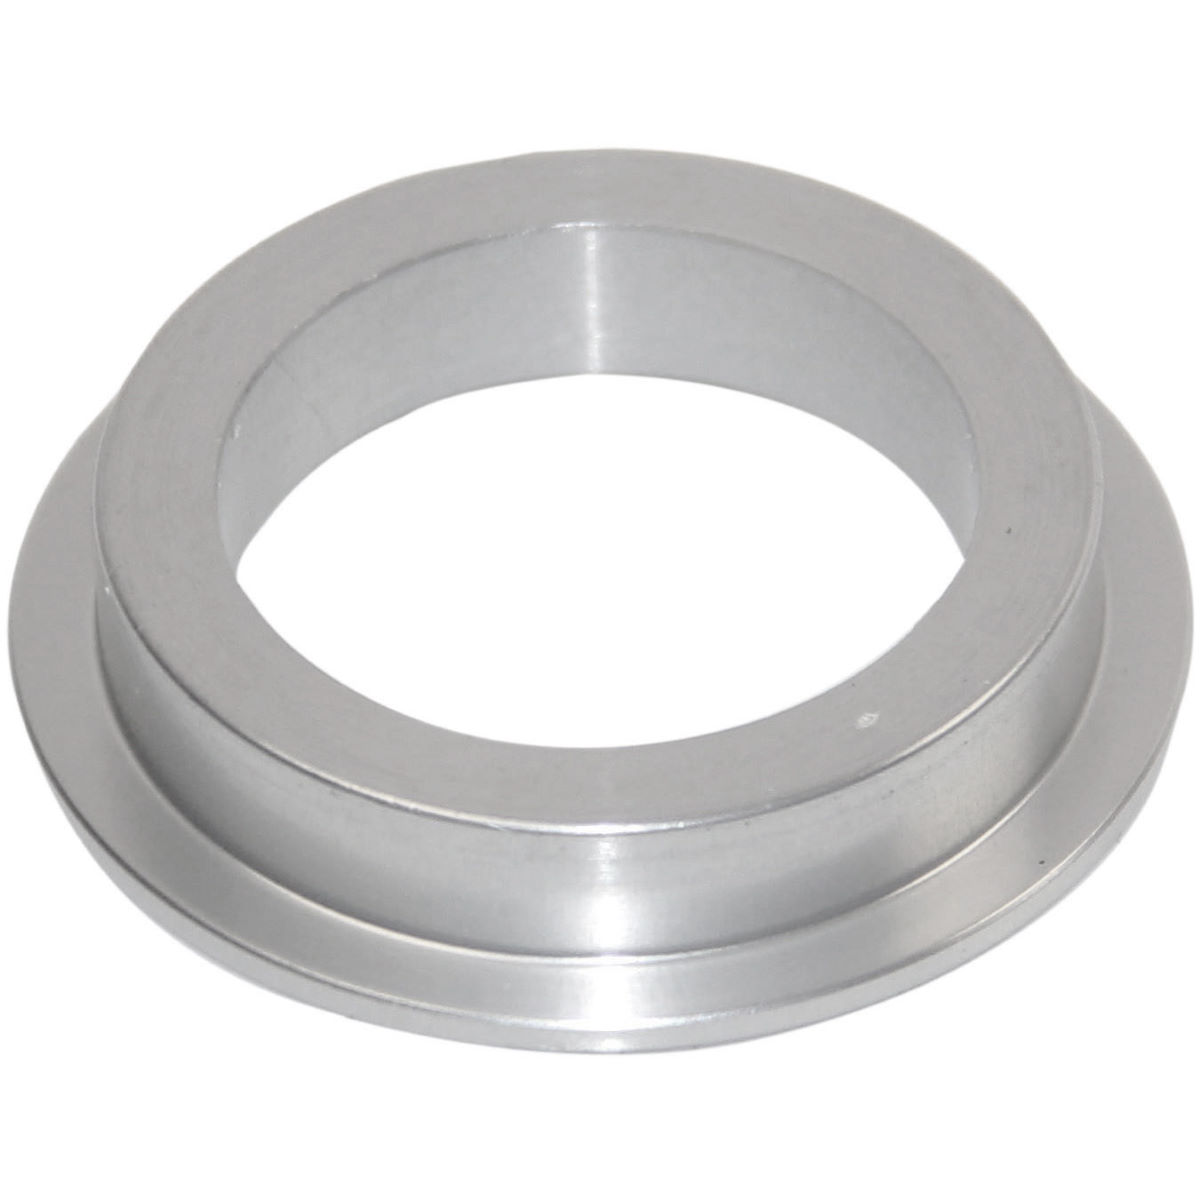 Hope 1.5 Headset Reducer Crown Converter - 1.5 To 1 1/8 Silver